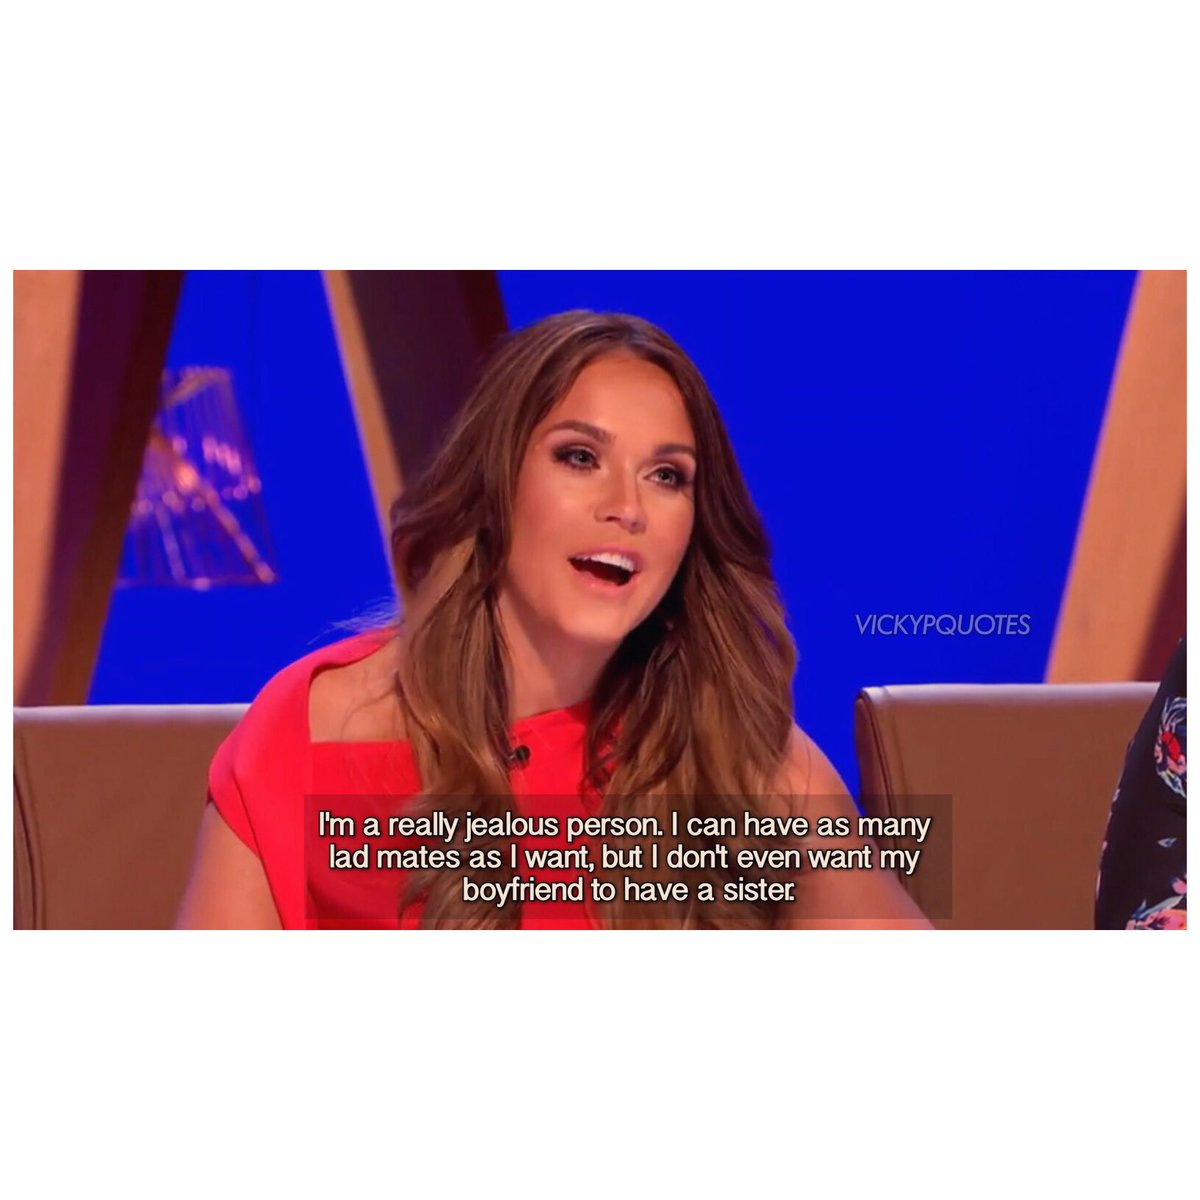 RT @VickyPQuotes: ???????????? preview quote of It's Not Me, It's You. @VickyPattison ???? https://t.co/8Q1ID5xjtD